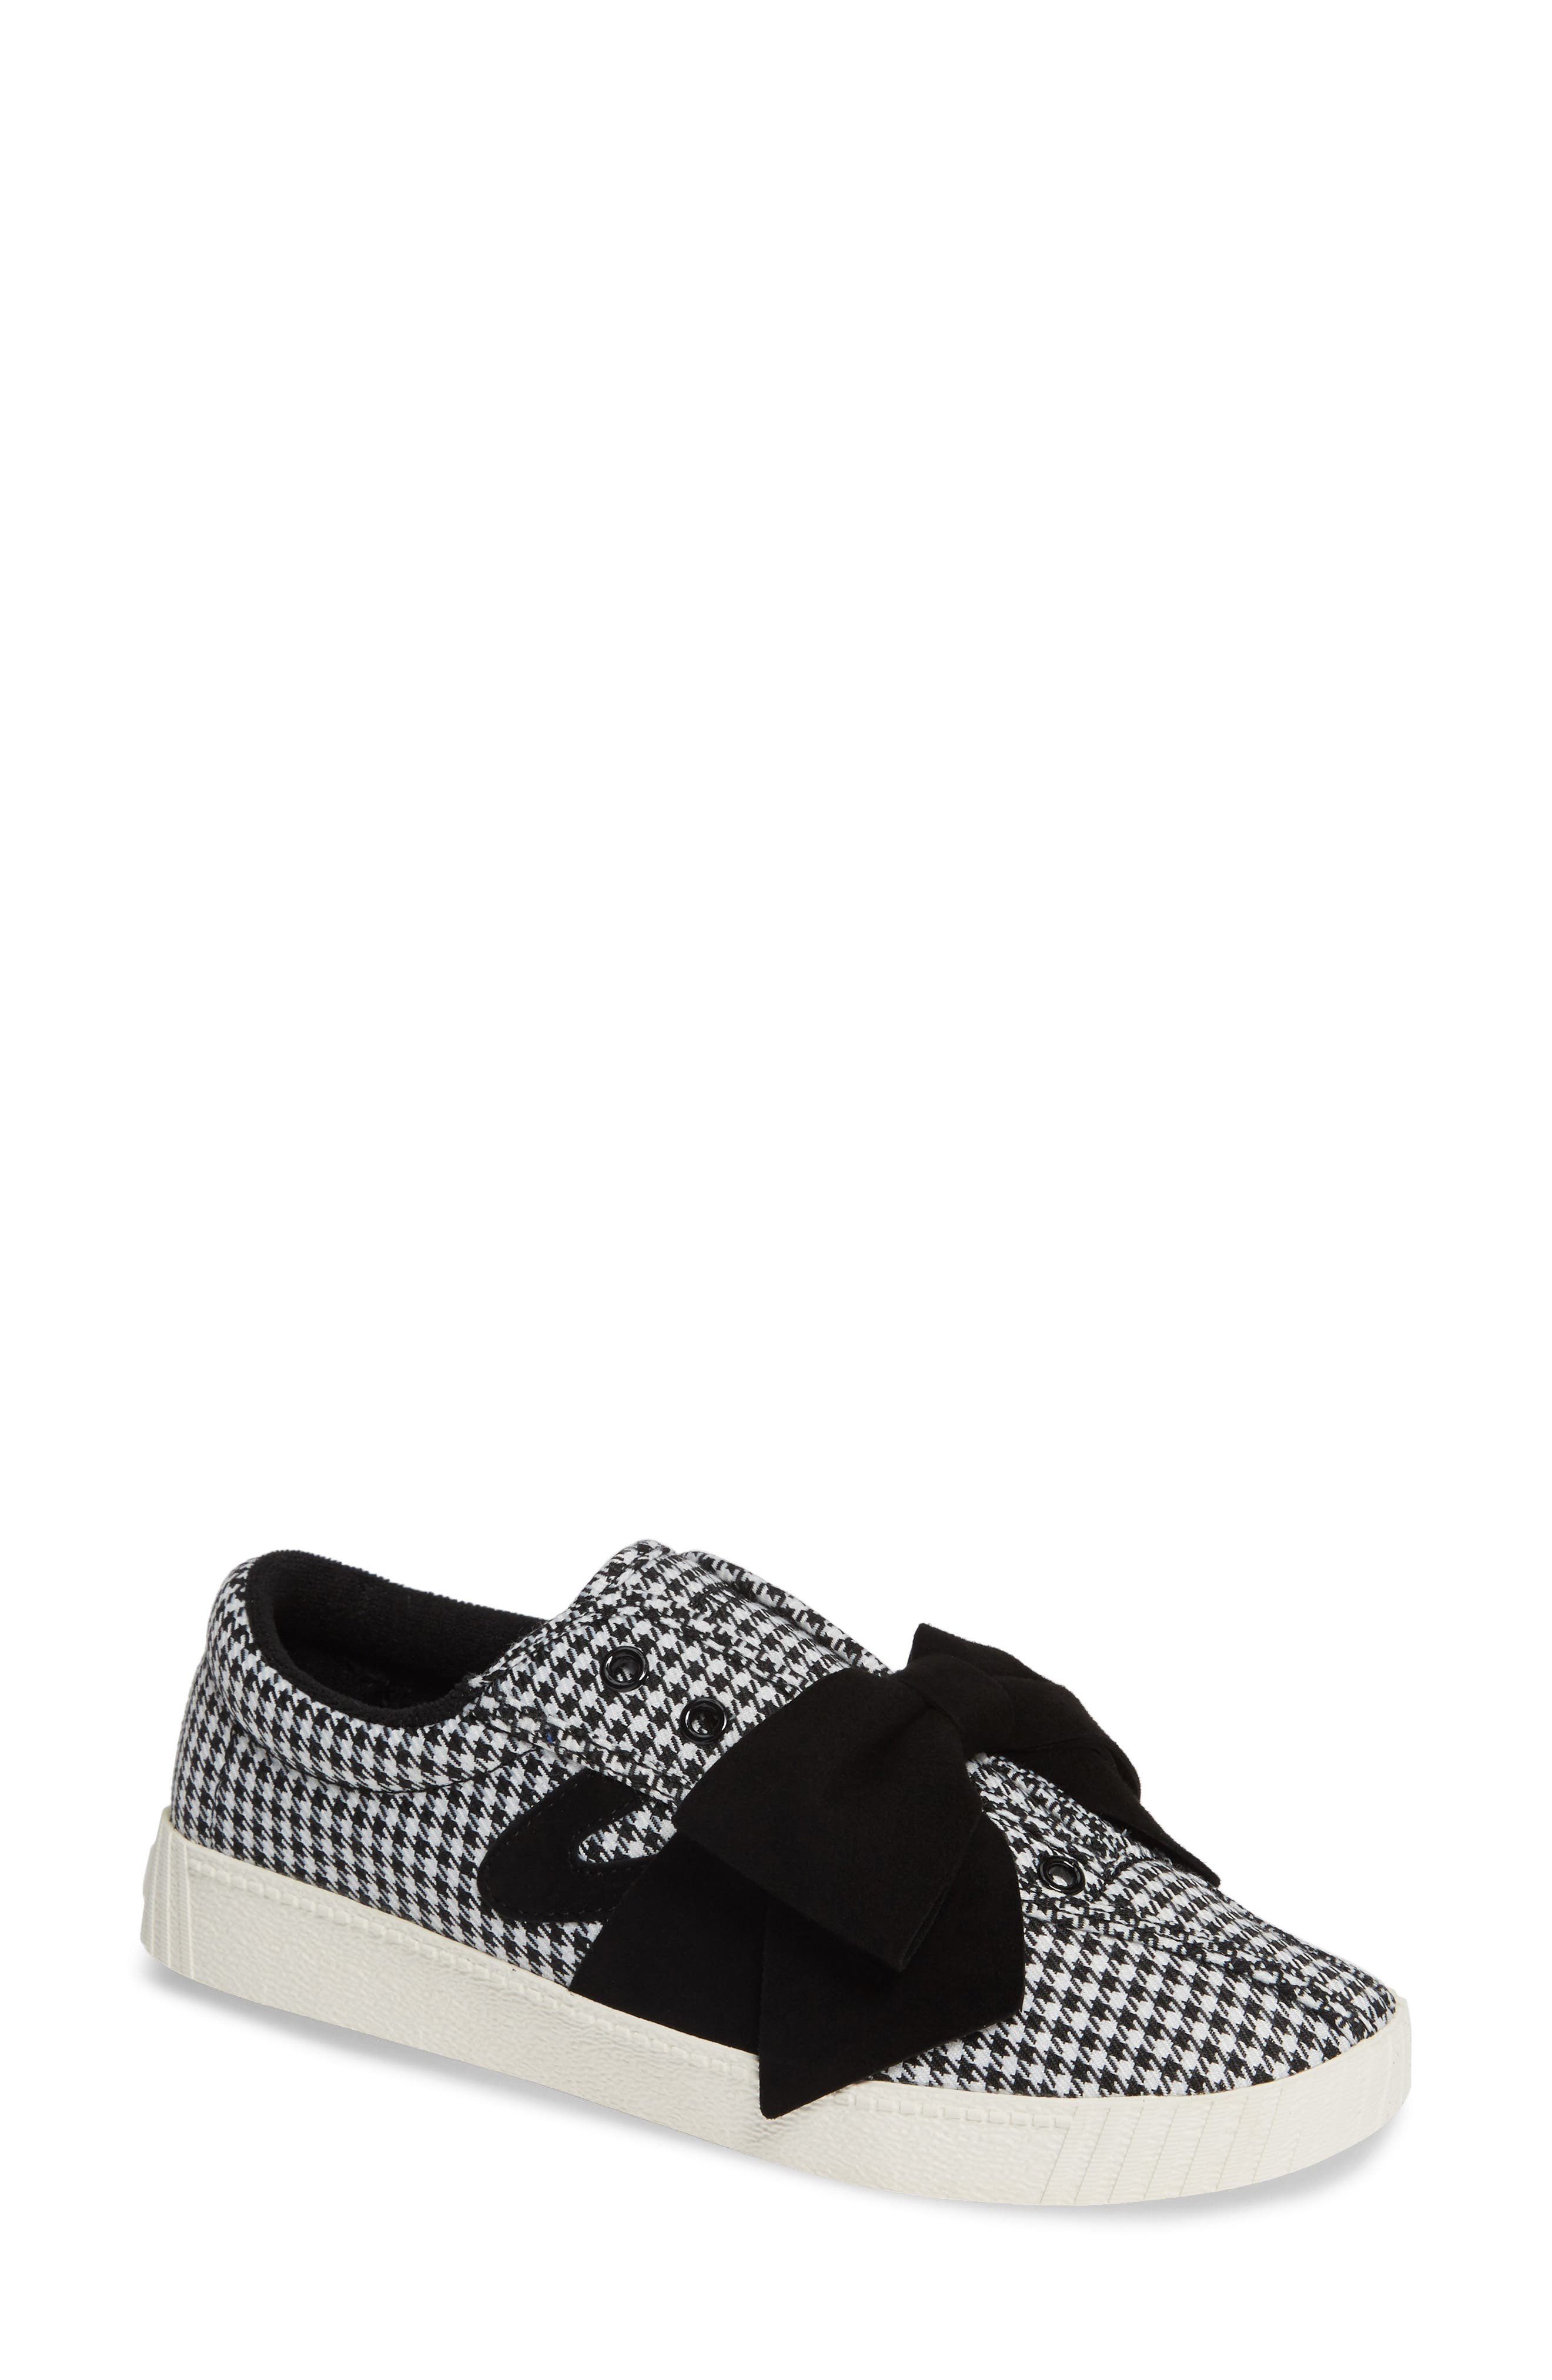 Nylite Lace-Up Houndstooth Sneakers W/ Bow in Black Multi